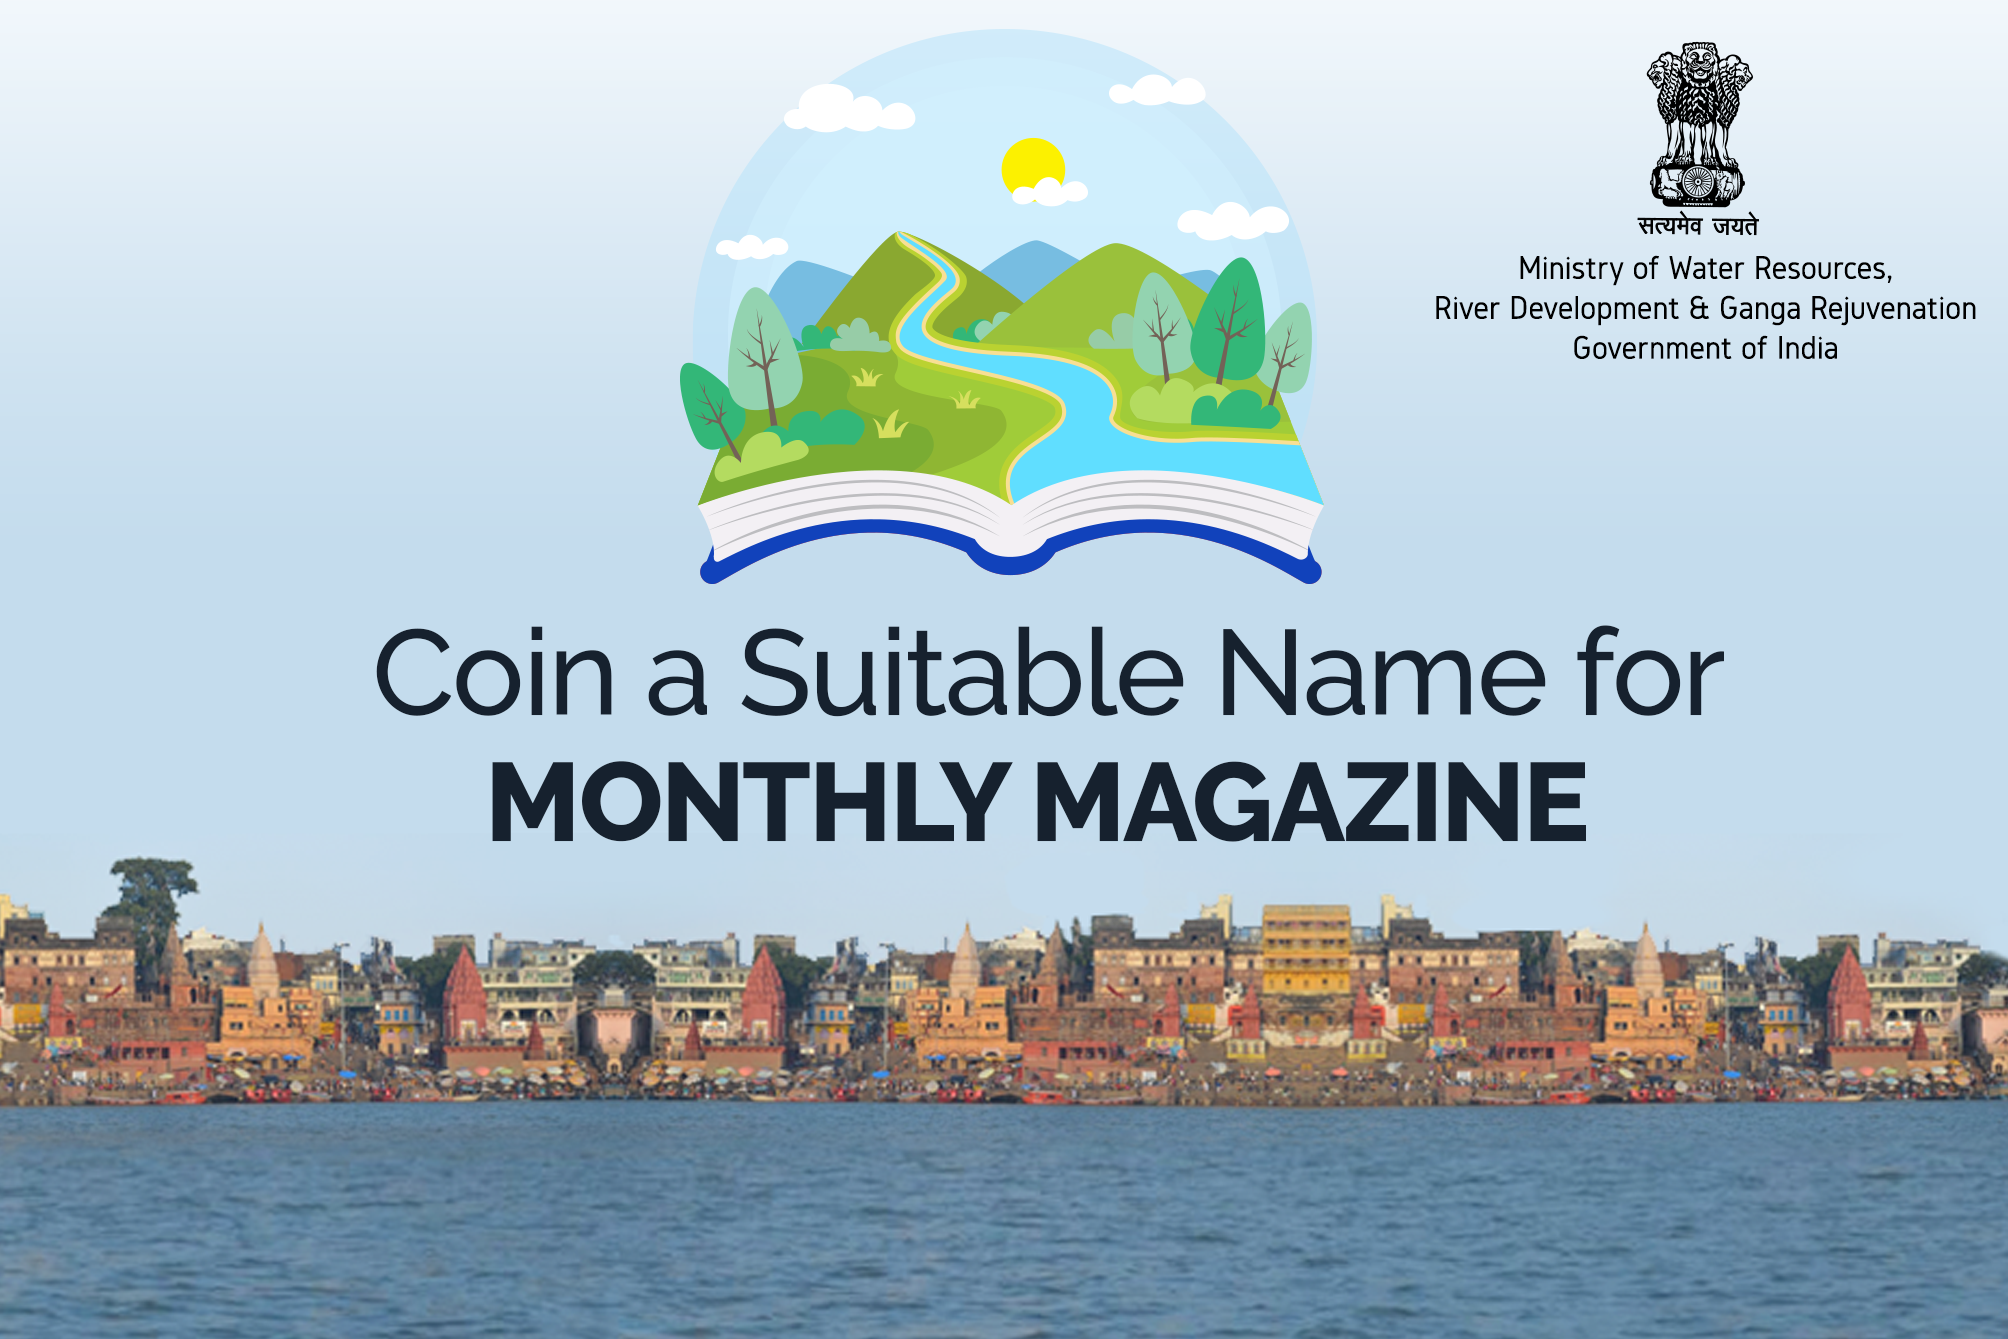 Coin a suitable name for Monthly Magazine of Ministry of WR